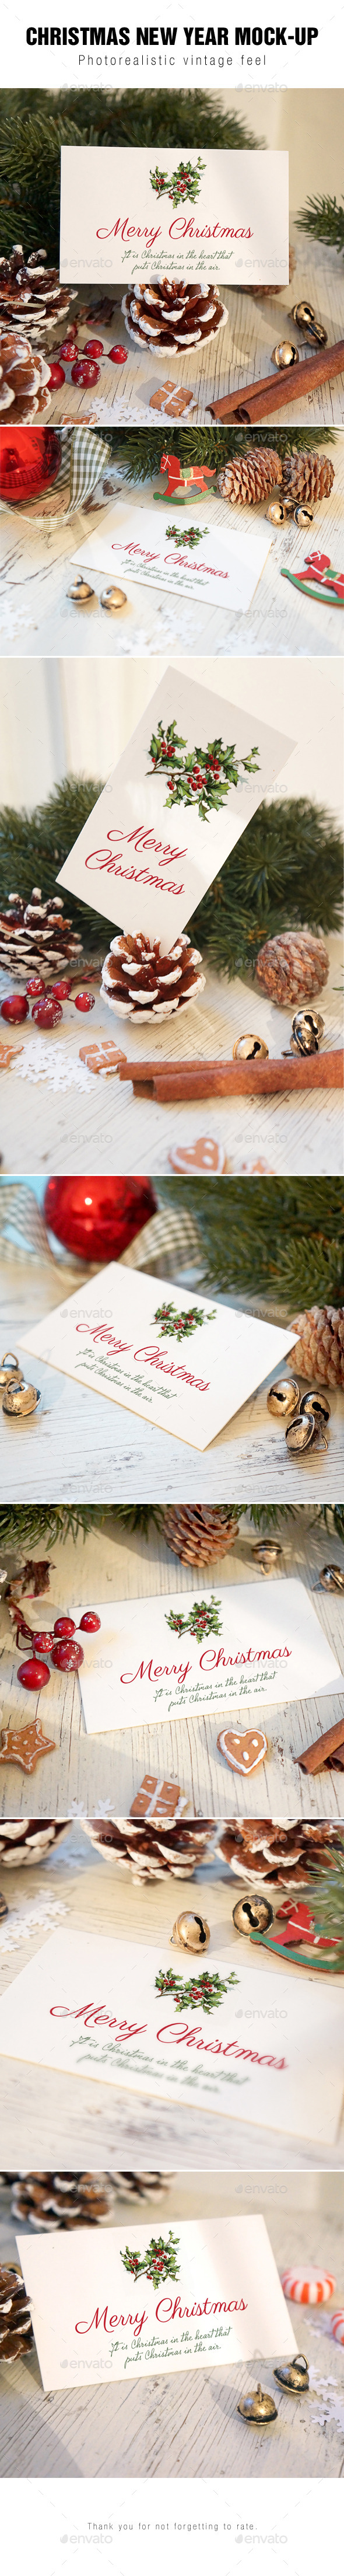 Christmas Card Mockup v2 - Stationery Print